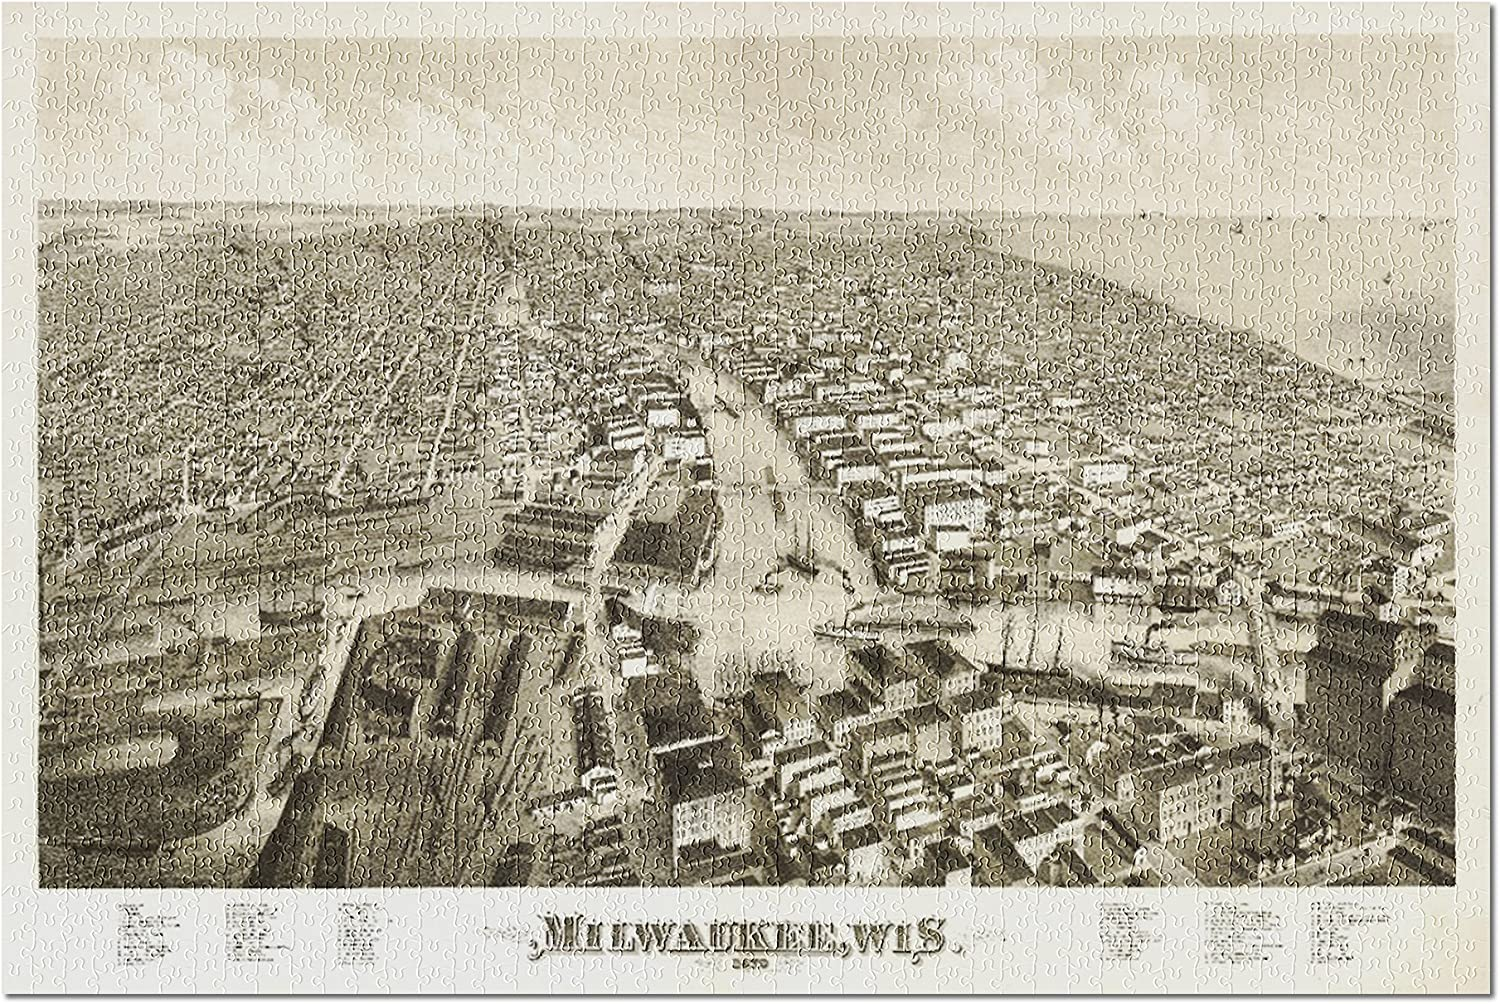 WEST VIRGINIA VINTAGE PANORAMIC MAPS COLLECTION ON CD